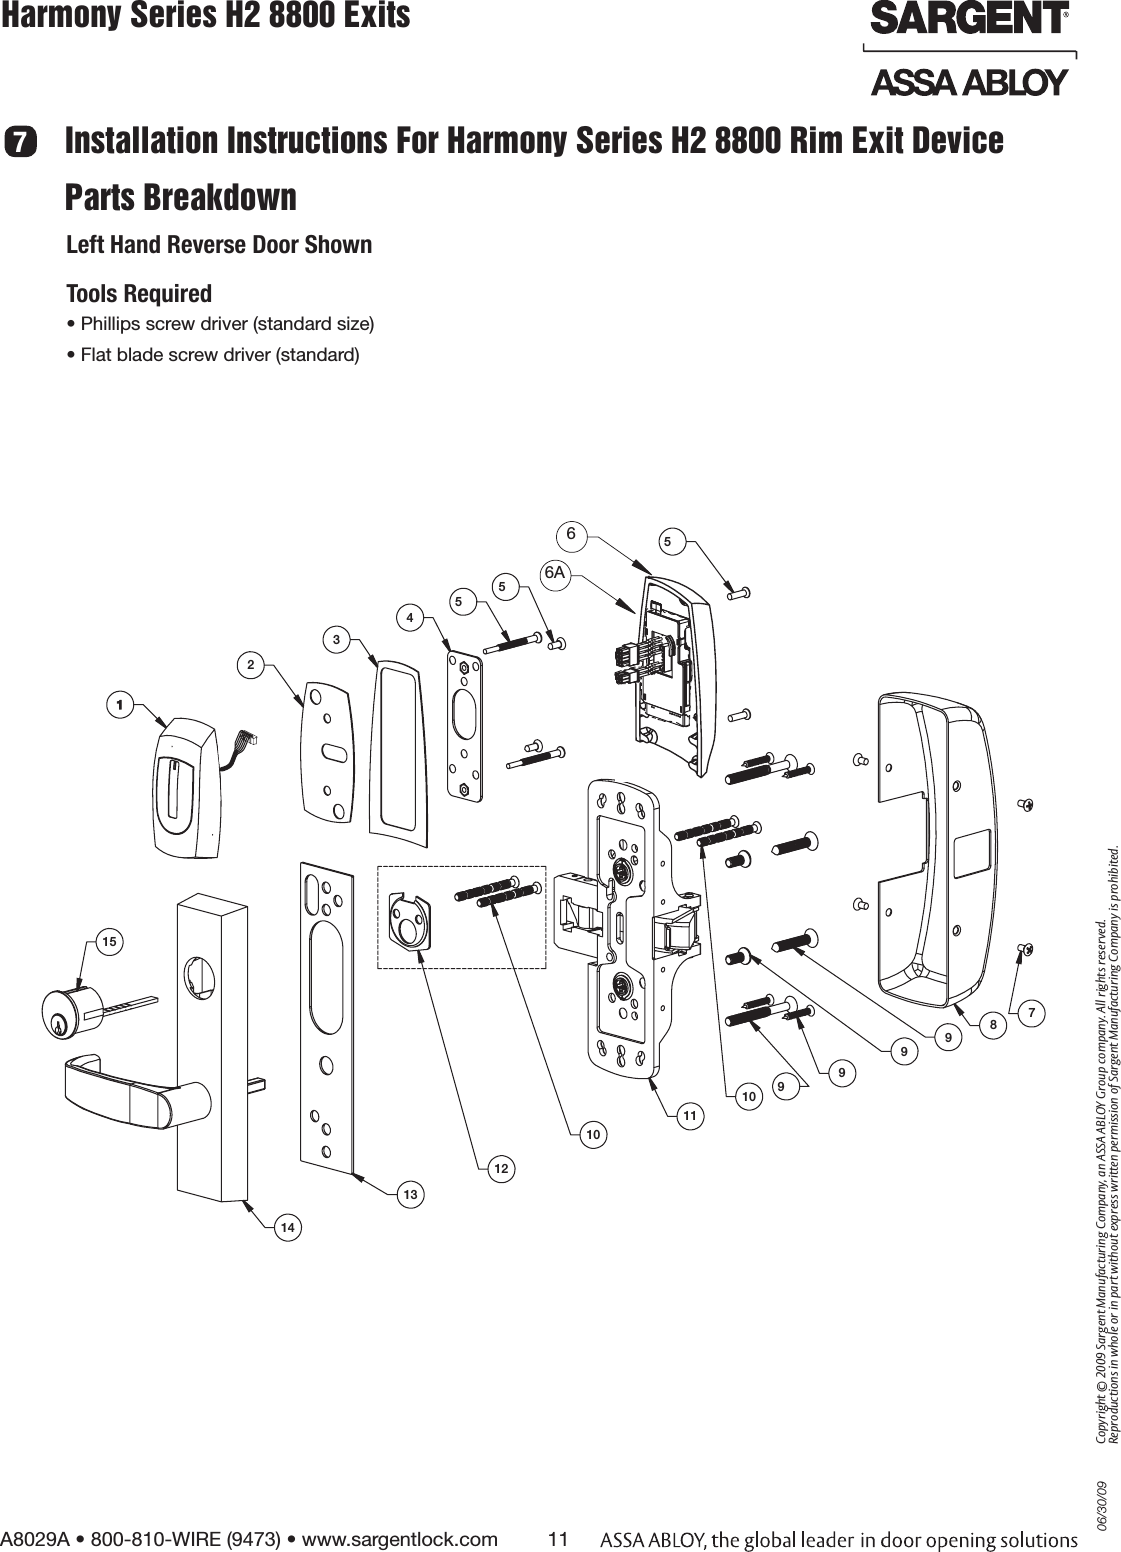 ALOY SCYPROX2 Harmony H2 Series Lock User Manual FCC Part 15 on